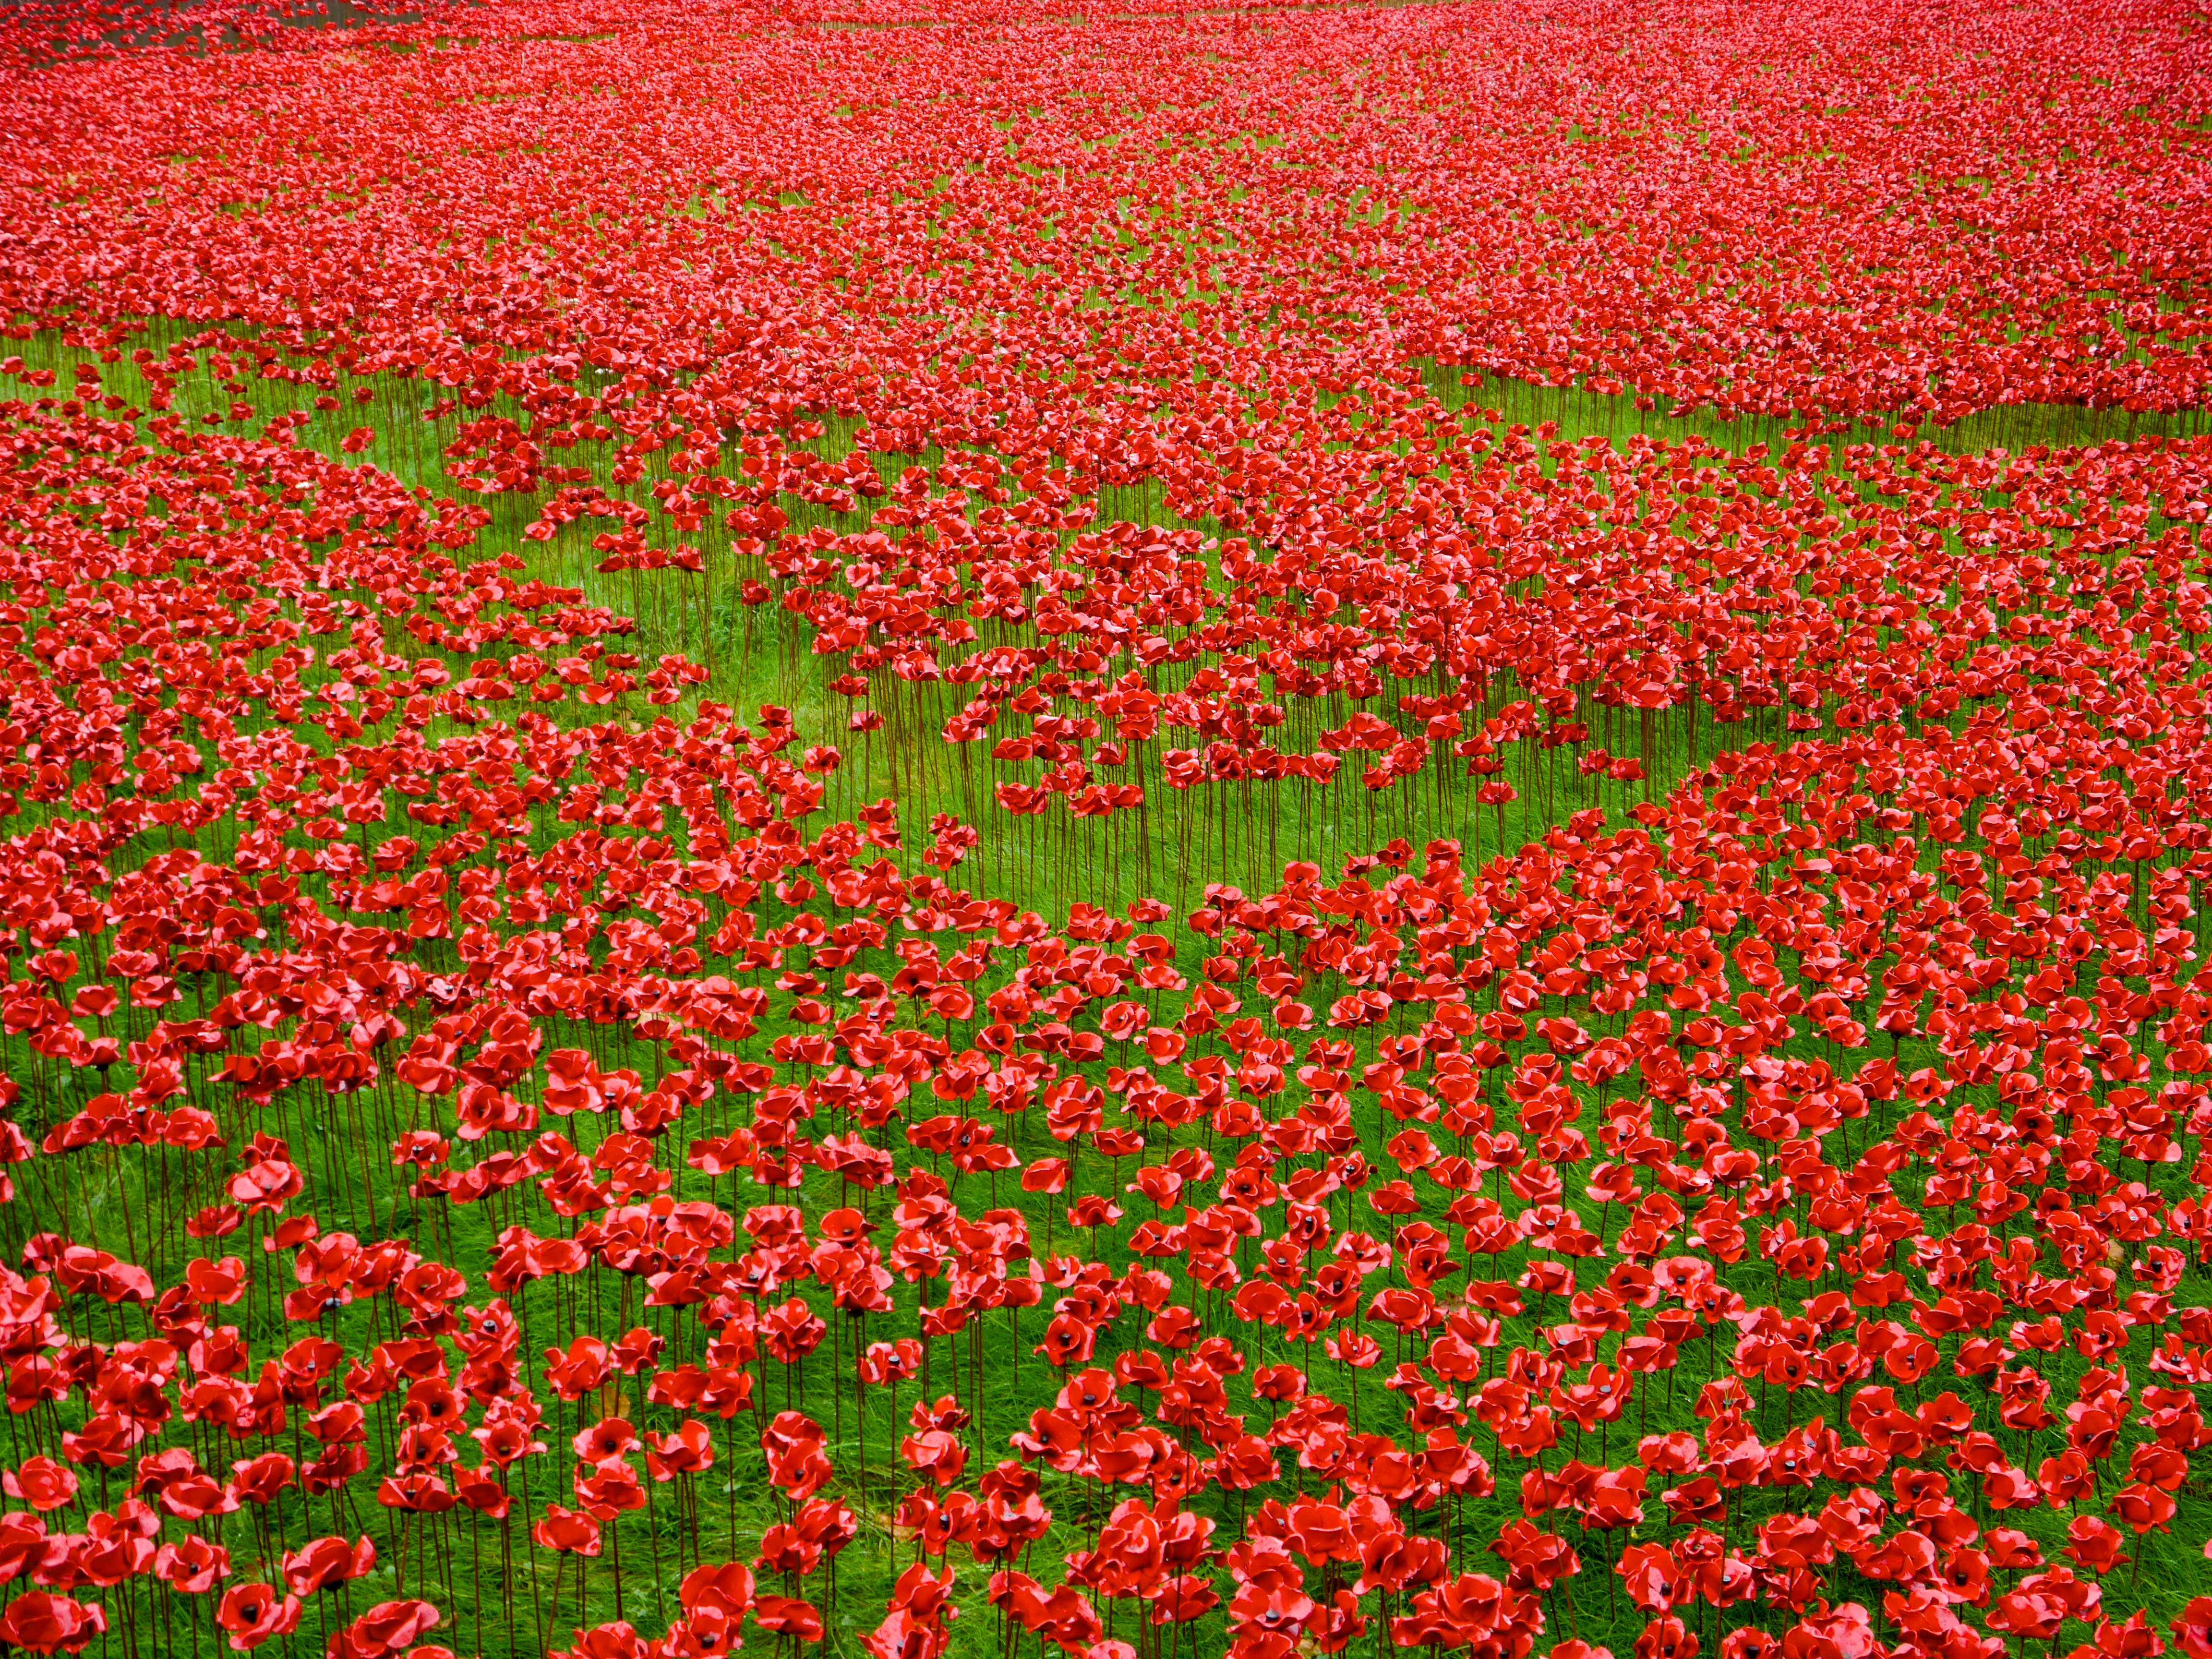 Remembrance Day And The Poppies At The Tower Of London